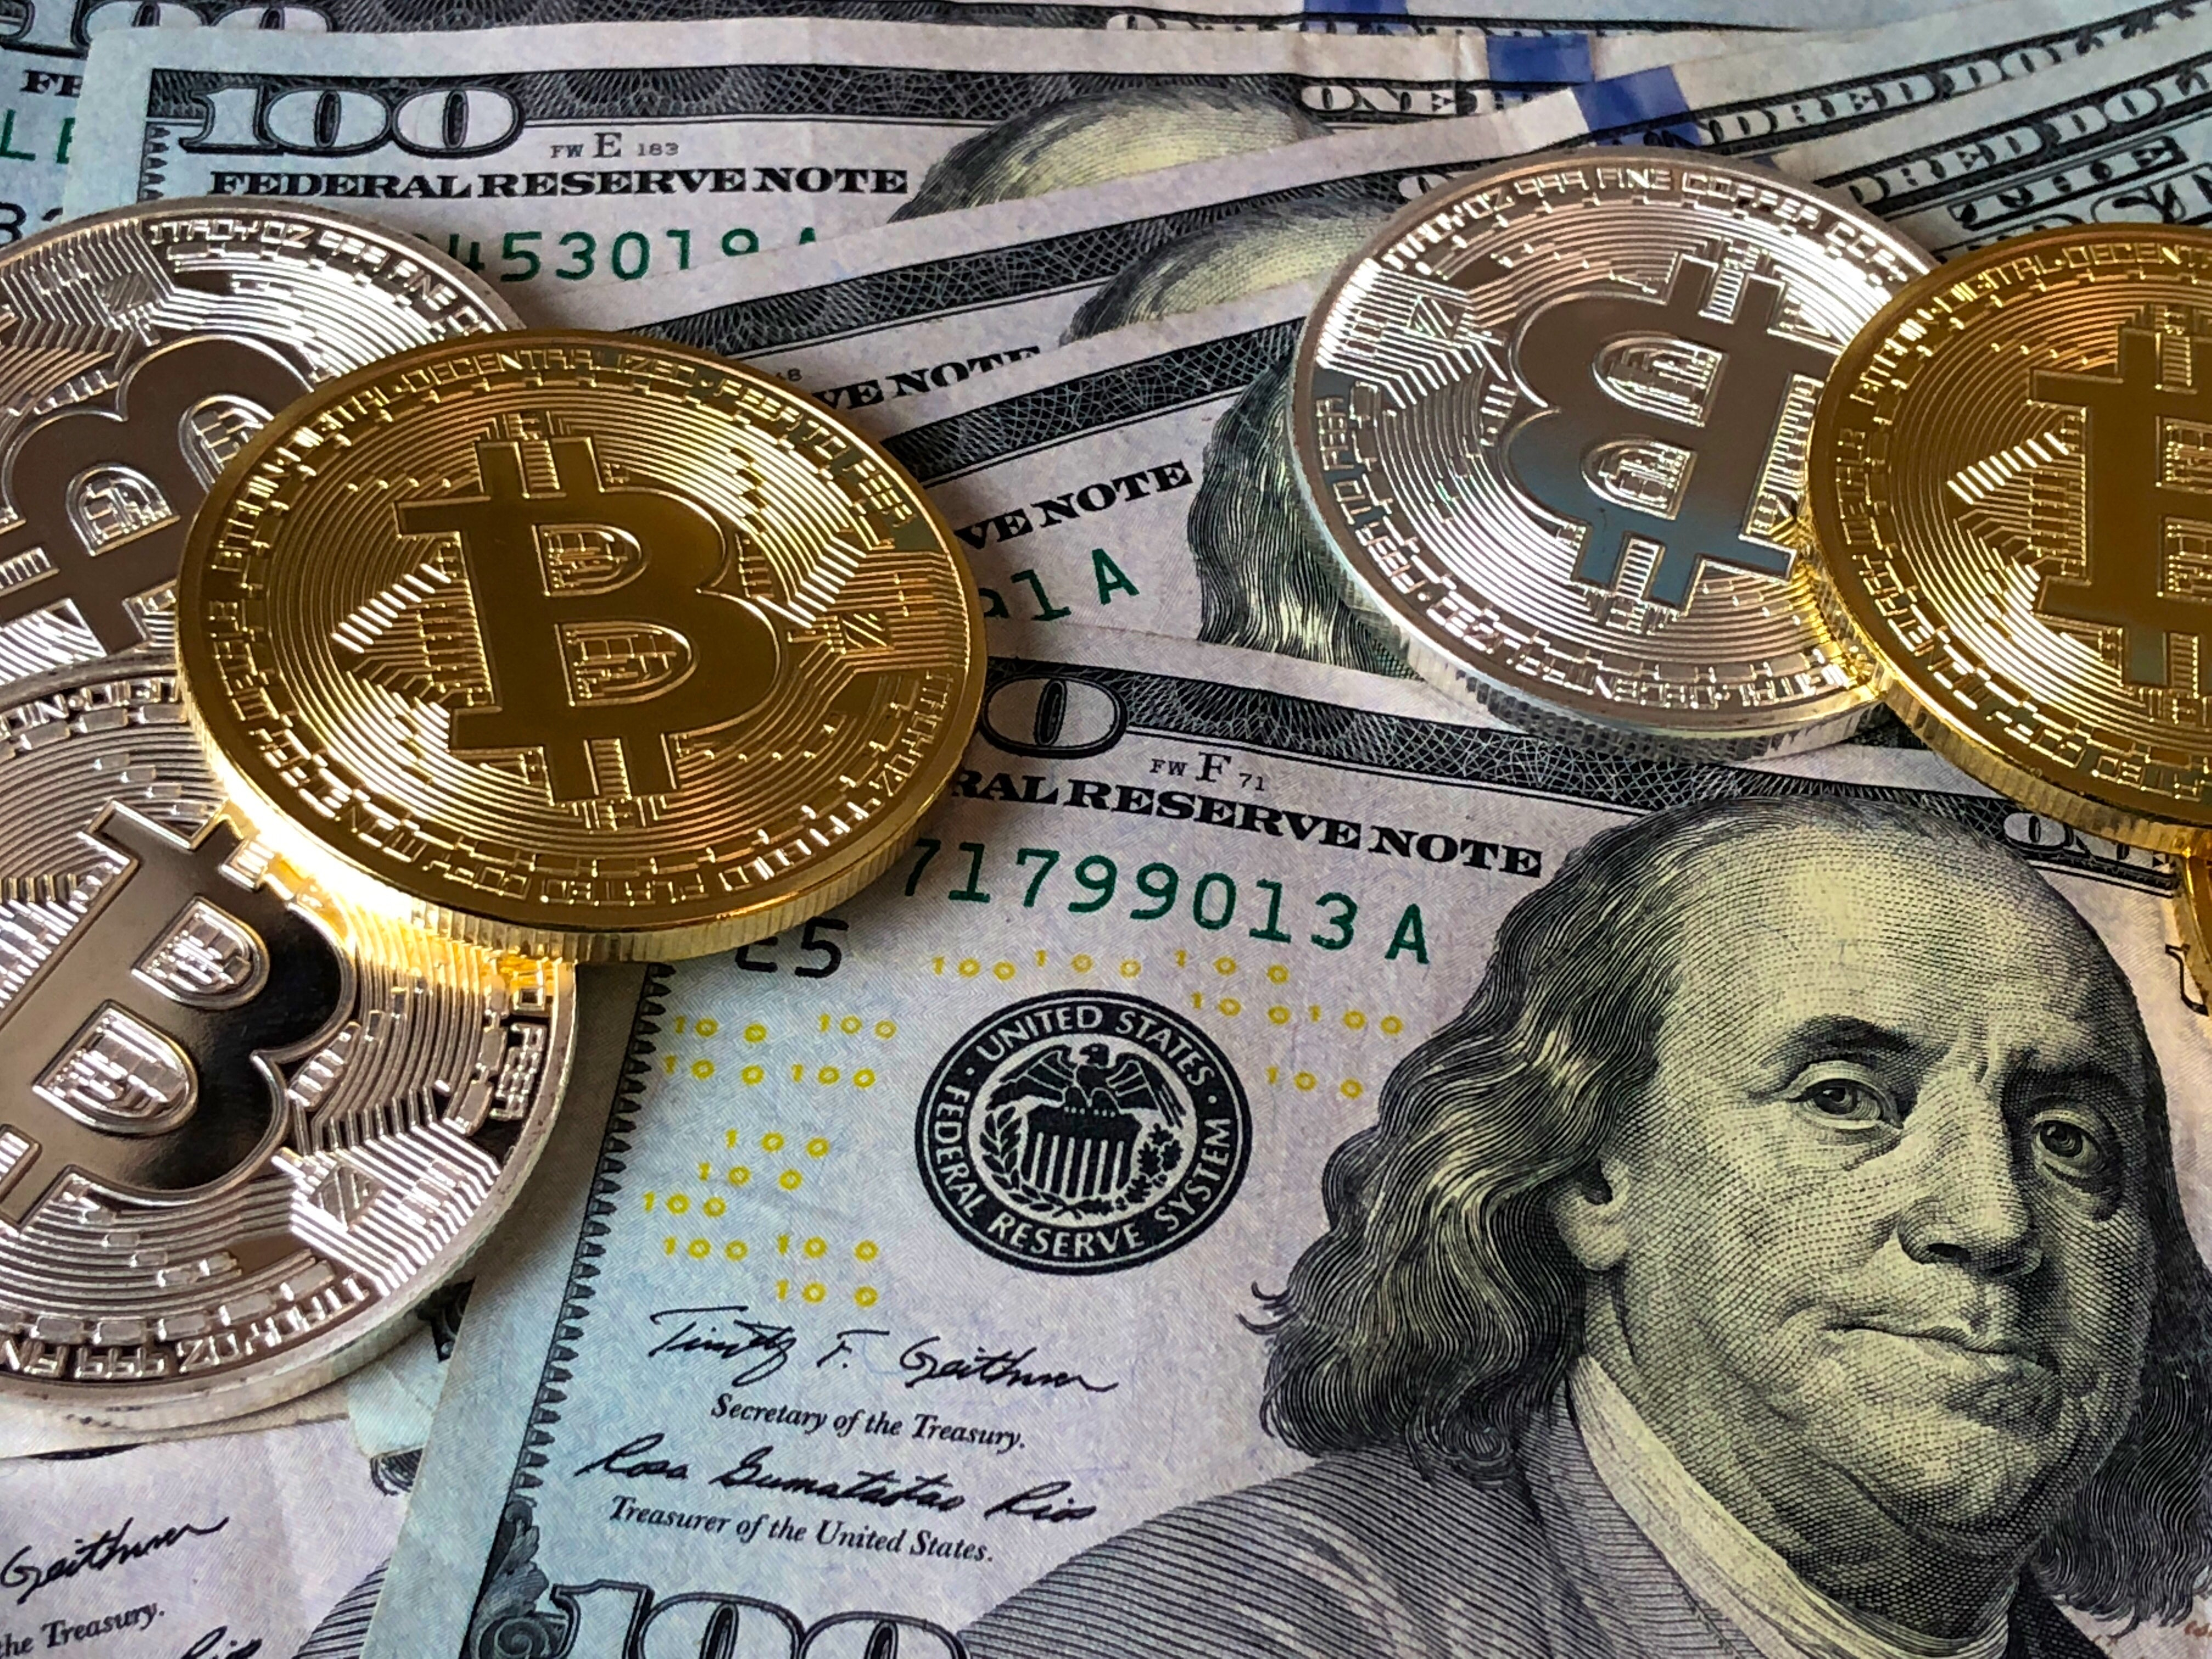 cryptocurrency offers a functional alternative to state-issued fiat money